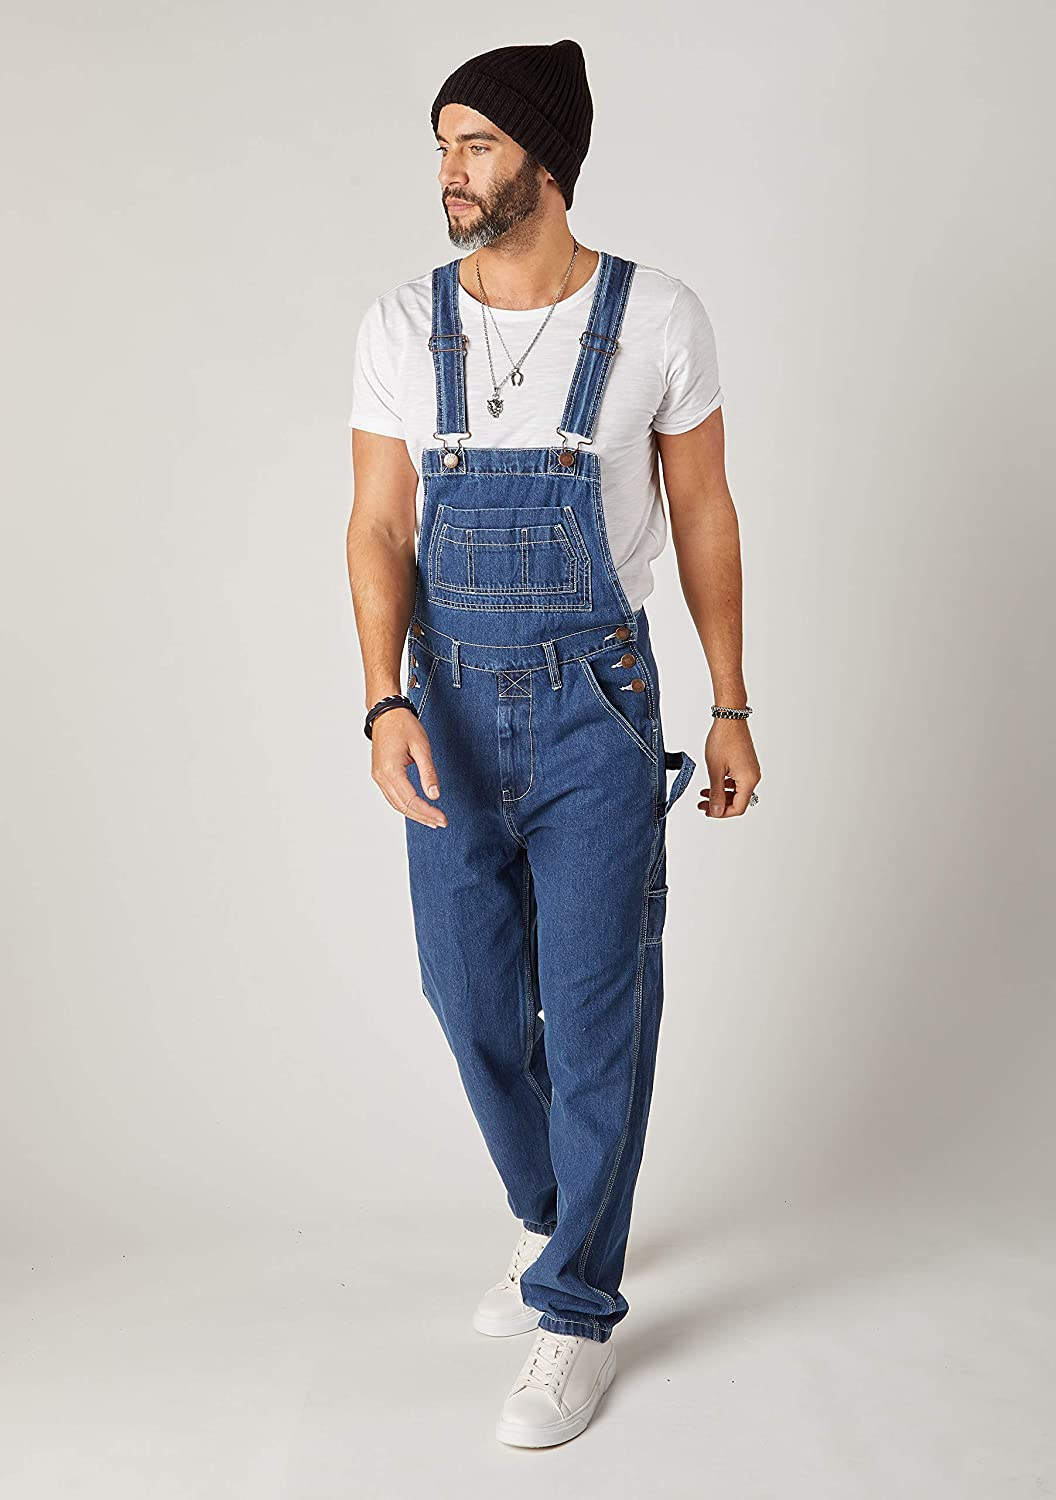 Wash Clothing Company Mens Relaxed Fit Denim Dungarees - Stonewash Classic Overalls 30-44W